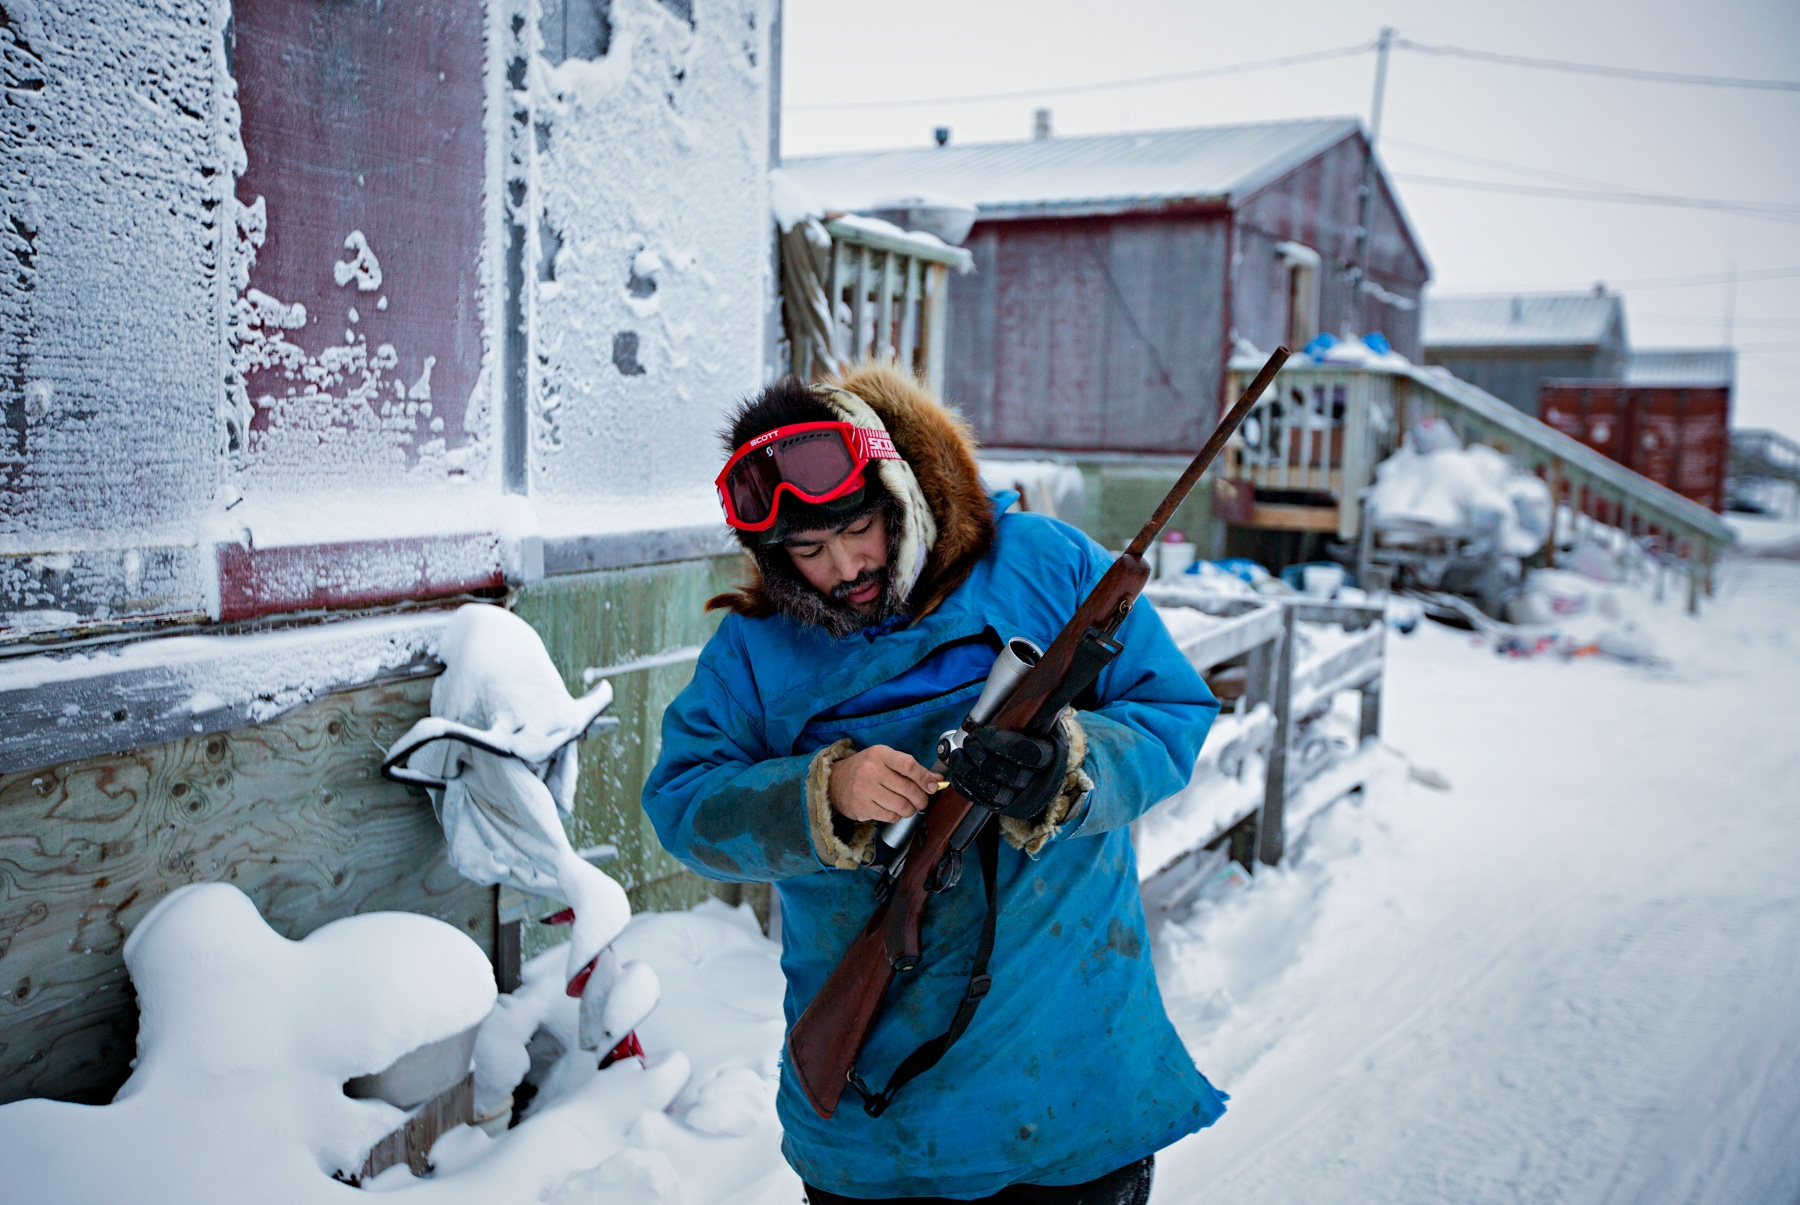 Fred Weyiouanna, 32 years old, and a life long resident loads his Ruger 77 rifle that he uses to hunt caribou. Caribou meat is a major source of food for residents of Shishmaref.